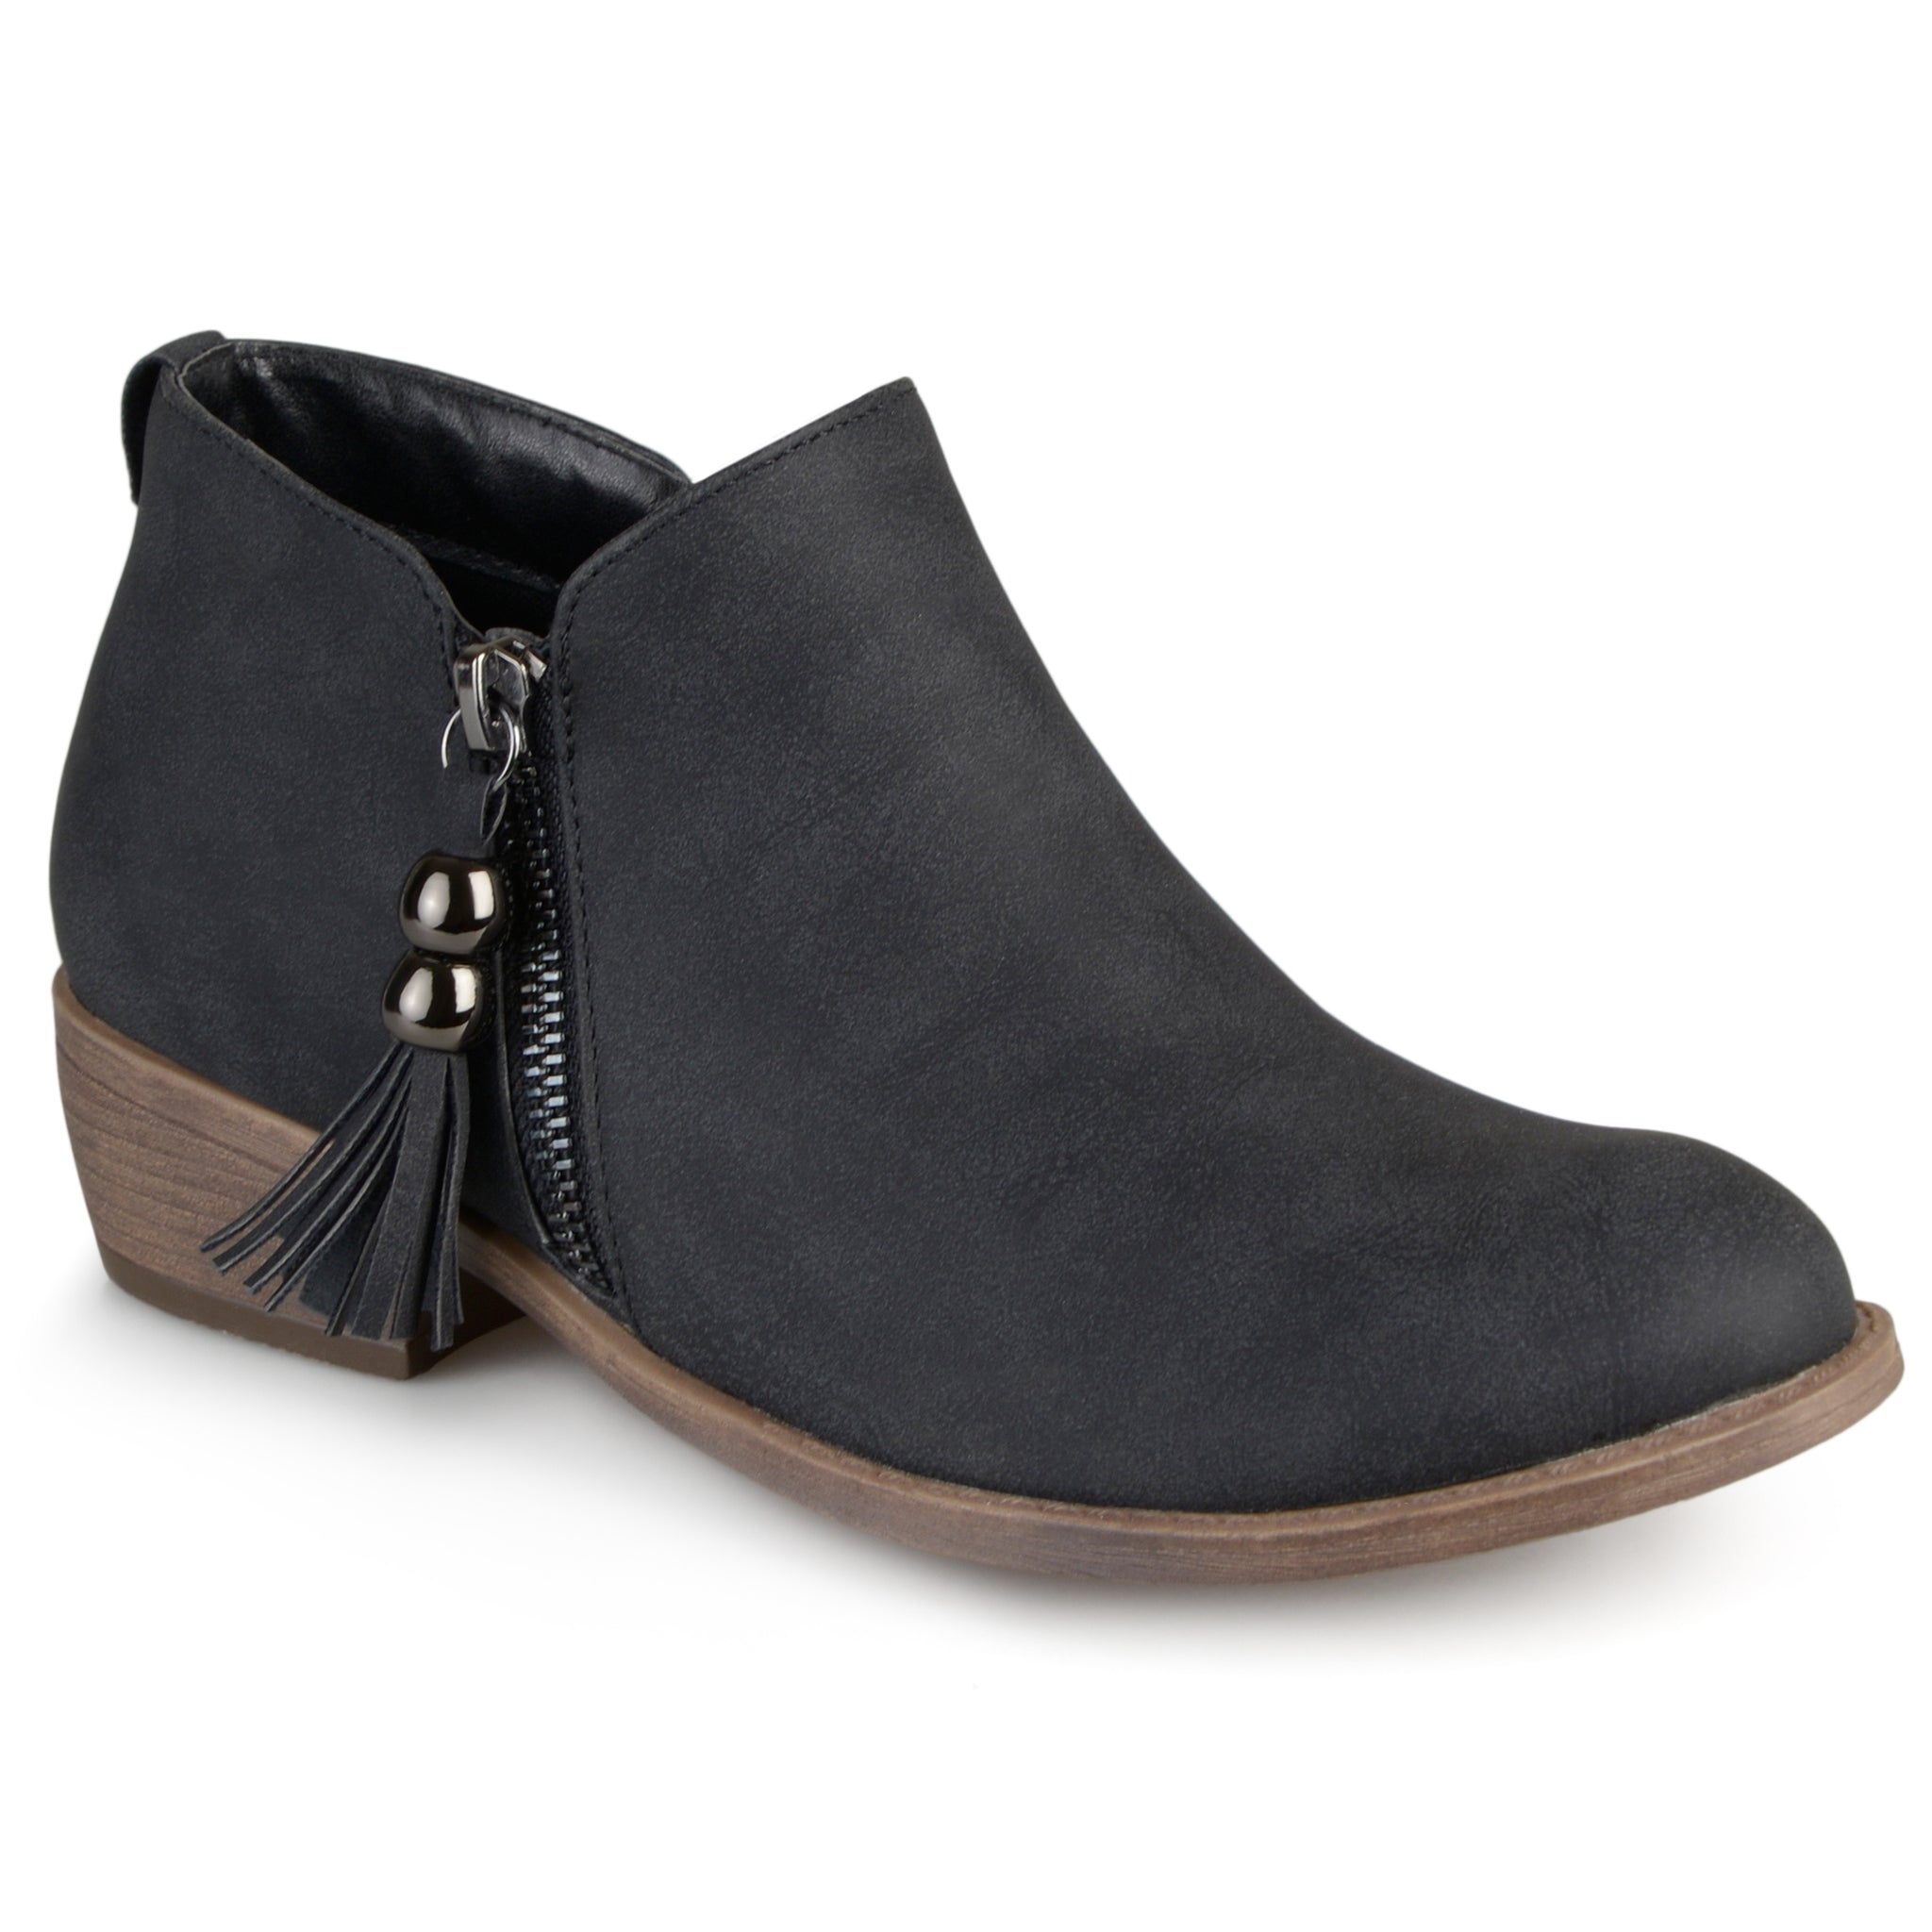 Faux Leather Zipper Ankle Boots